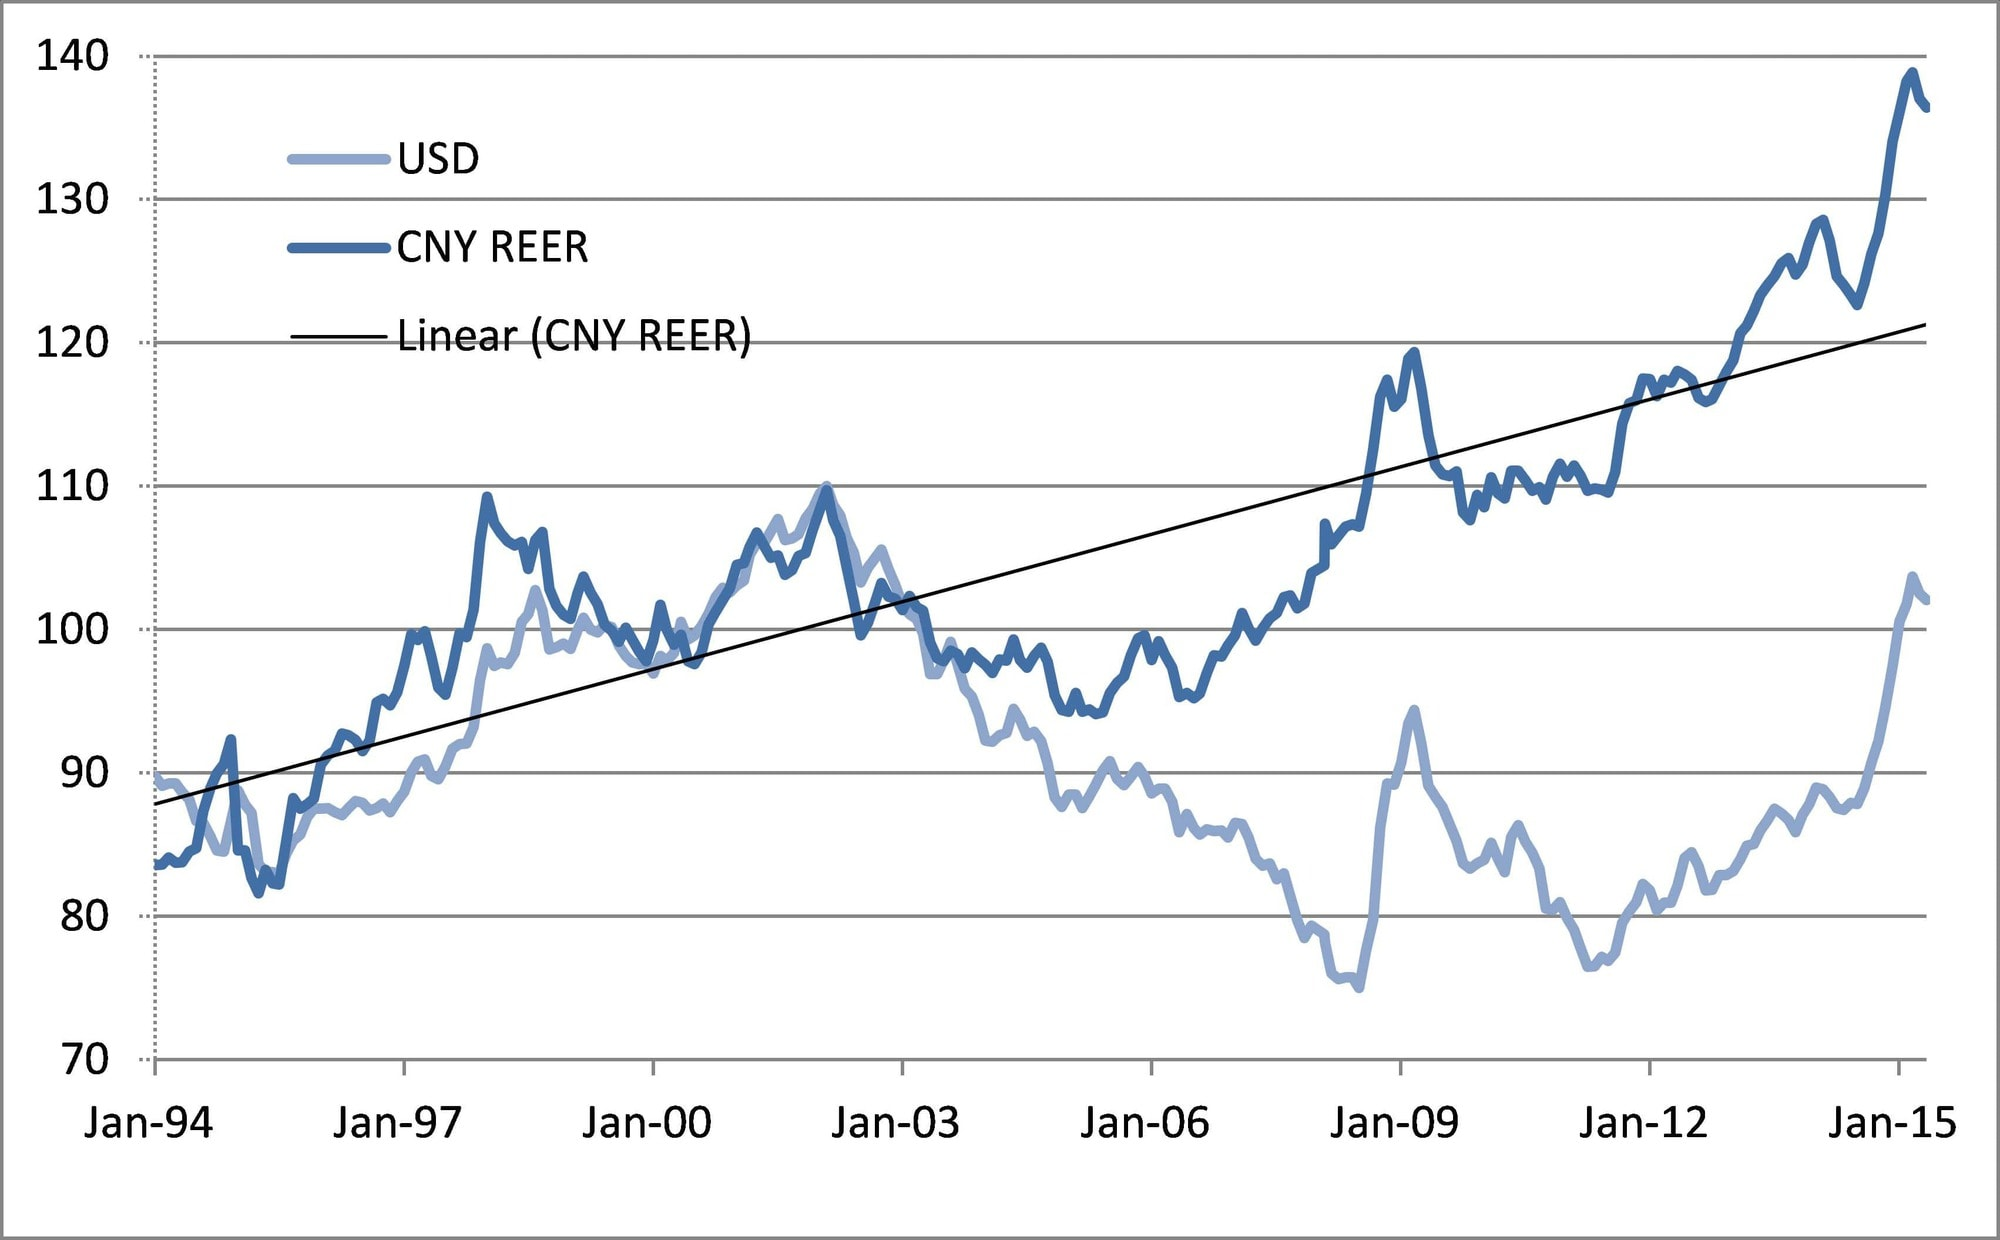 CNY real effective exchange rate appreciation had accelerated well above trend CNY moved alongside the USD